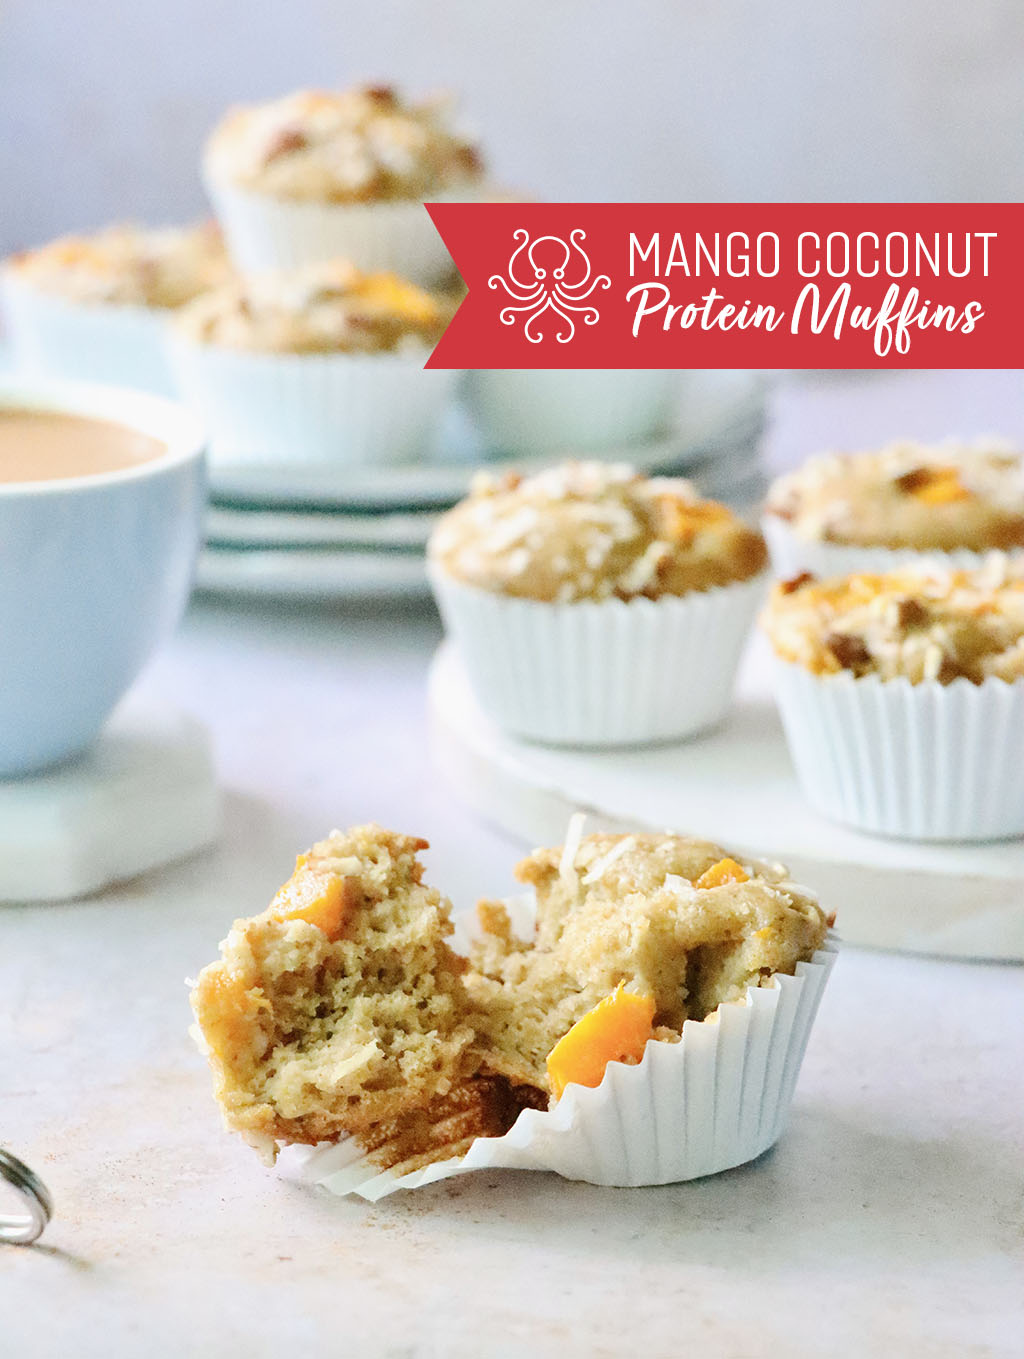 Mango Coconut Protein Muffins from Octonuts California